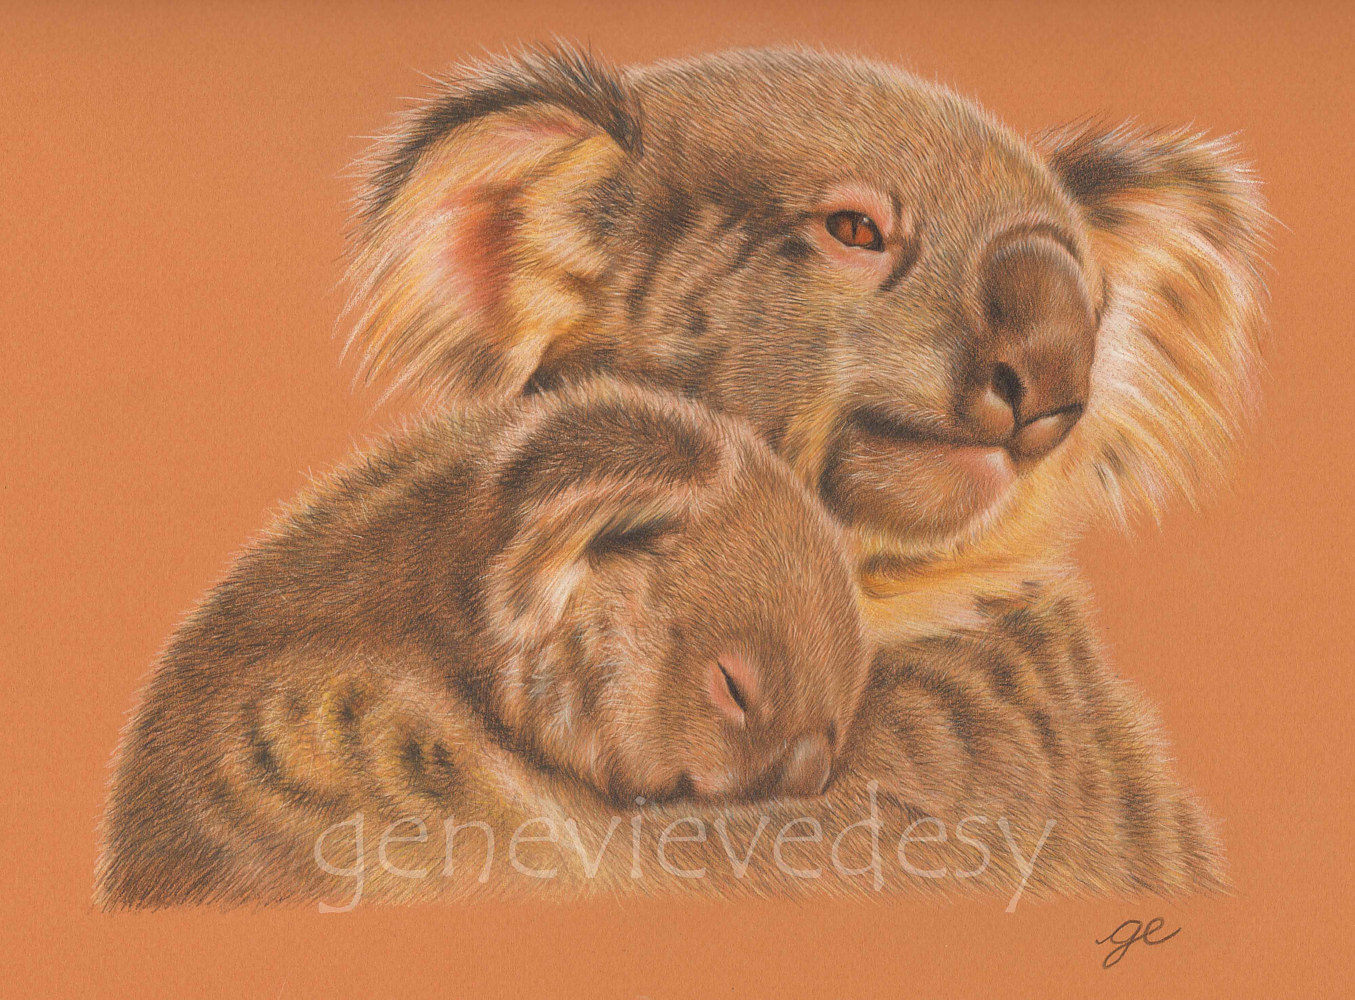 Koalas, avril 2014 by Genevieve Desy